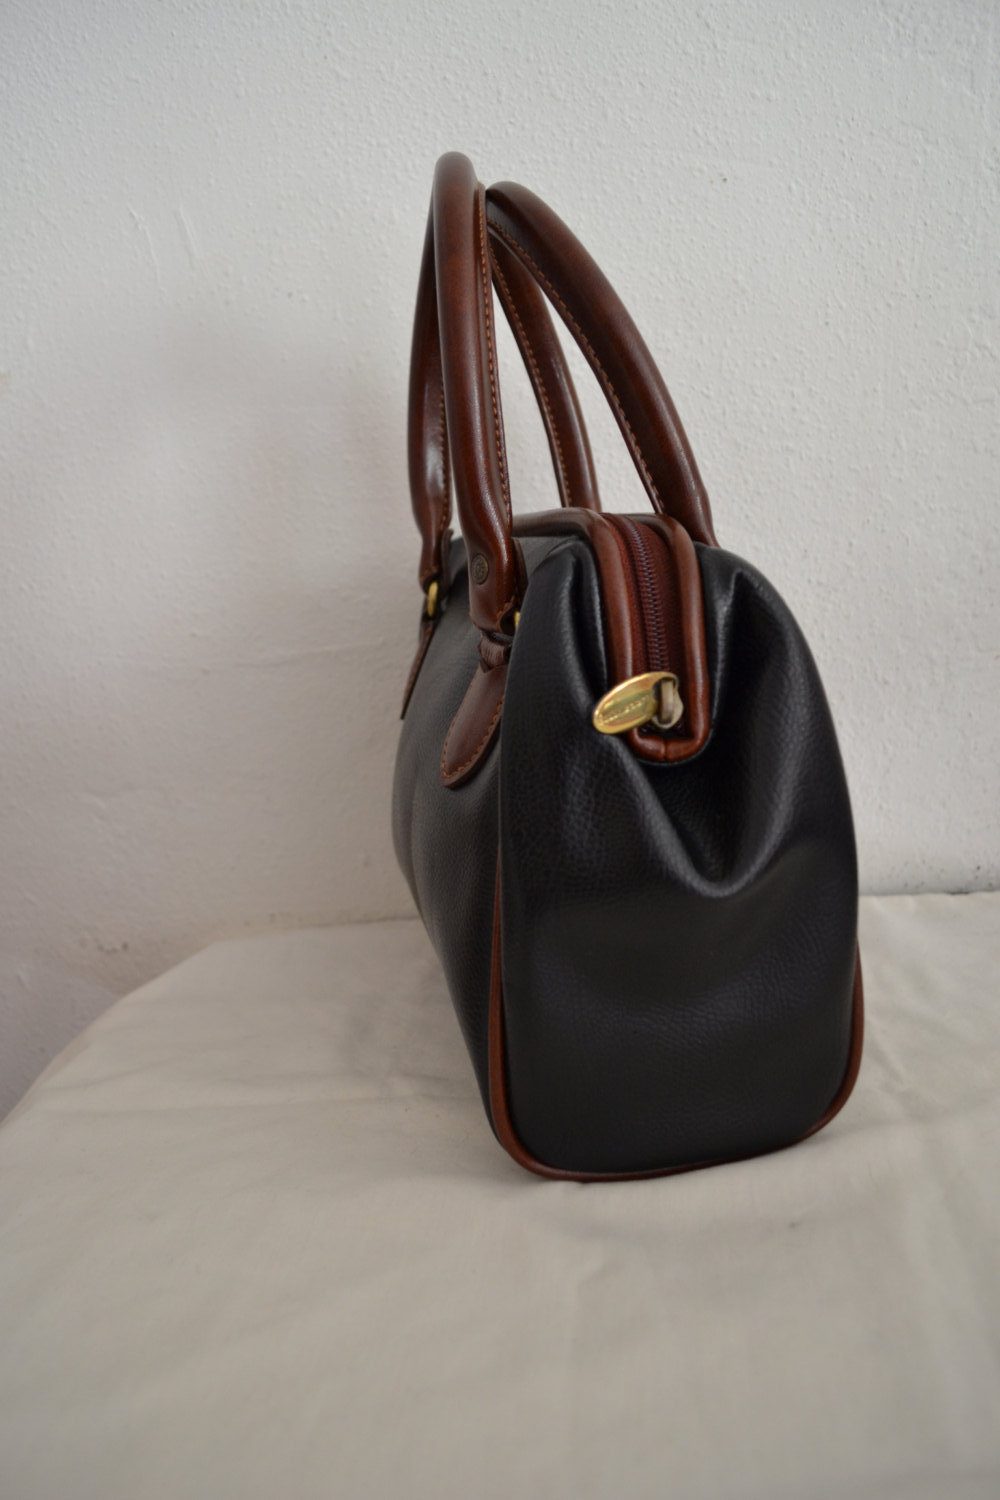 Free Ship Liz Claiborne Purse Brown and Black Vegan Faux Leather Handbag